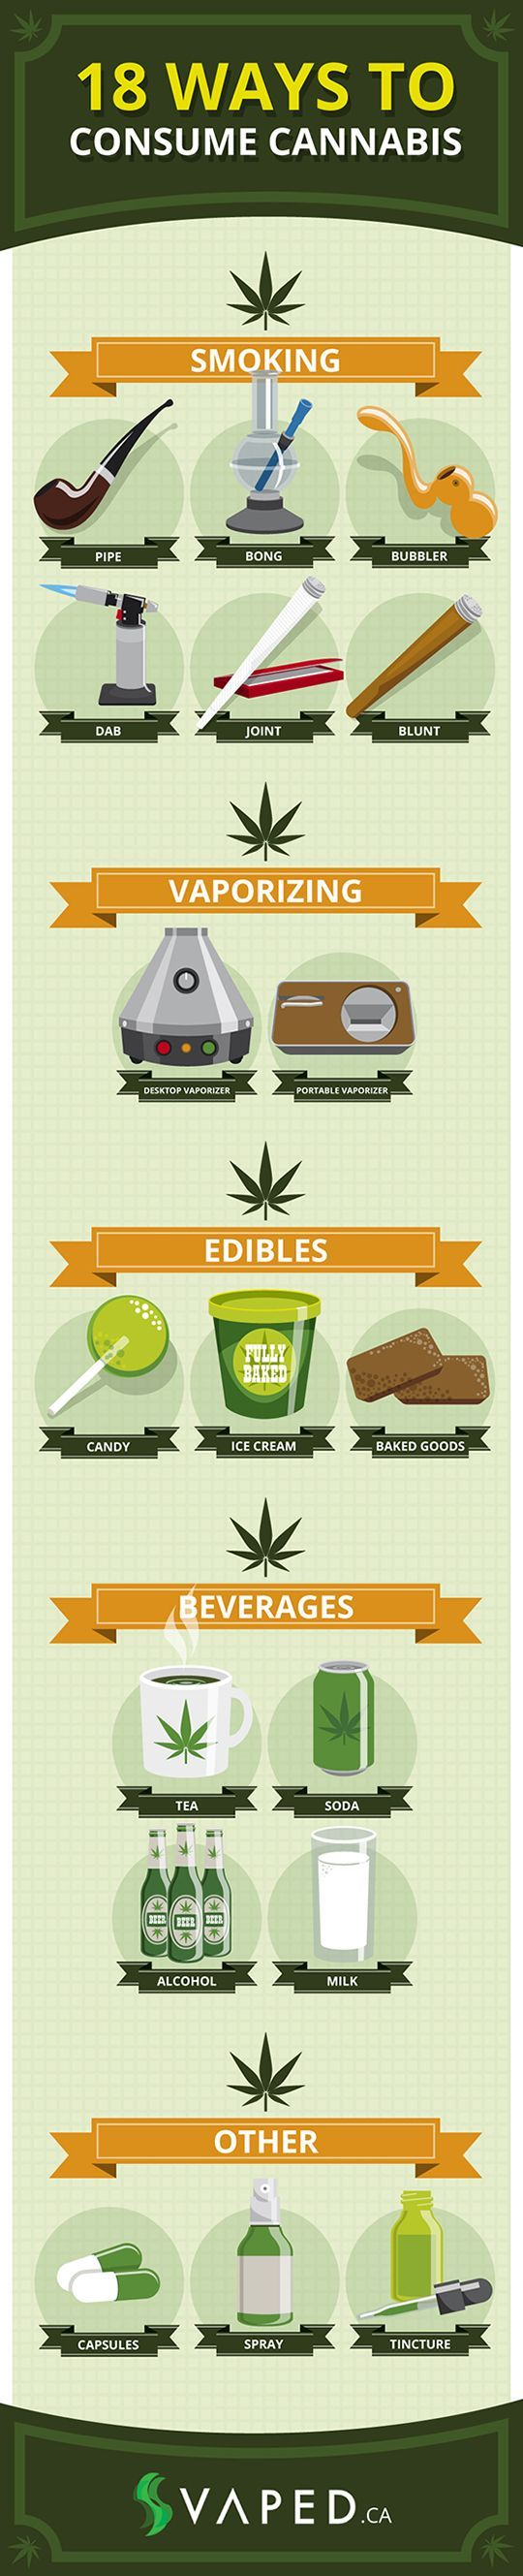 ways to consume cannabis